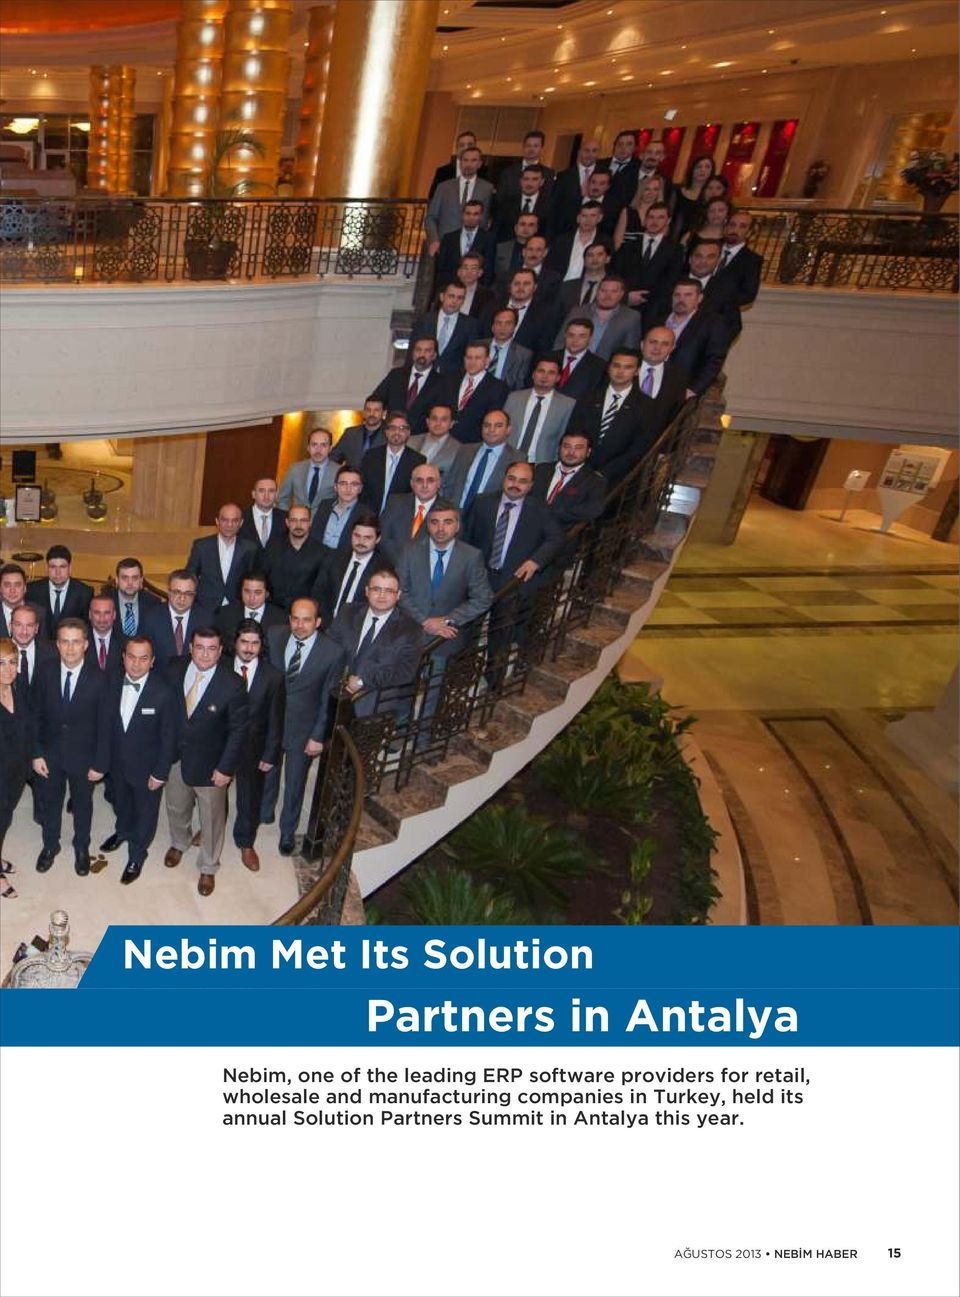 manufacturing companies in Turkey, held its annual Solution